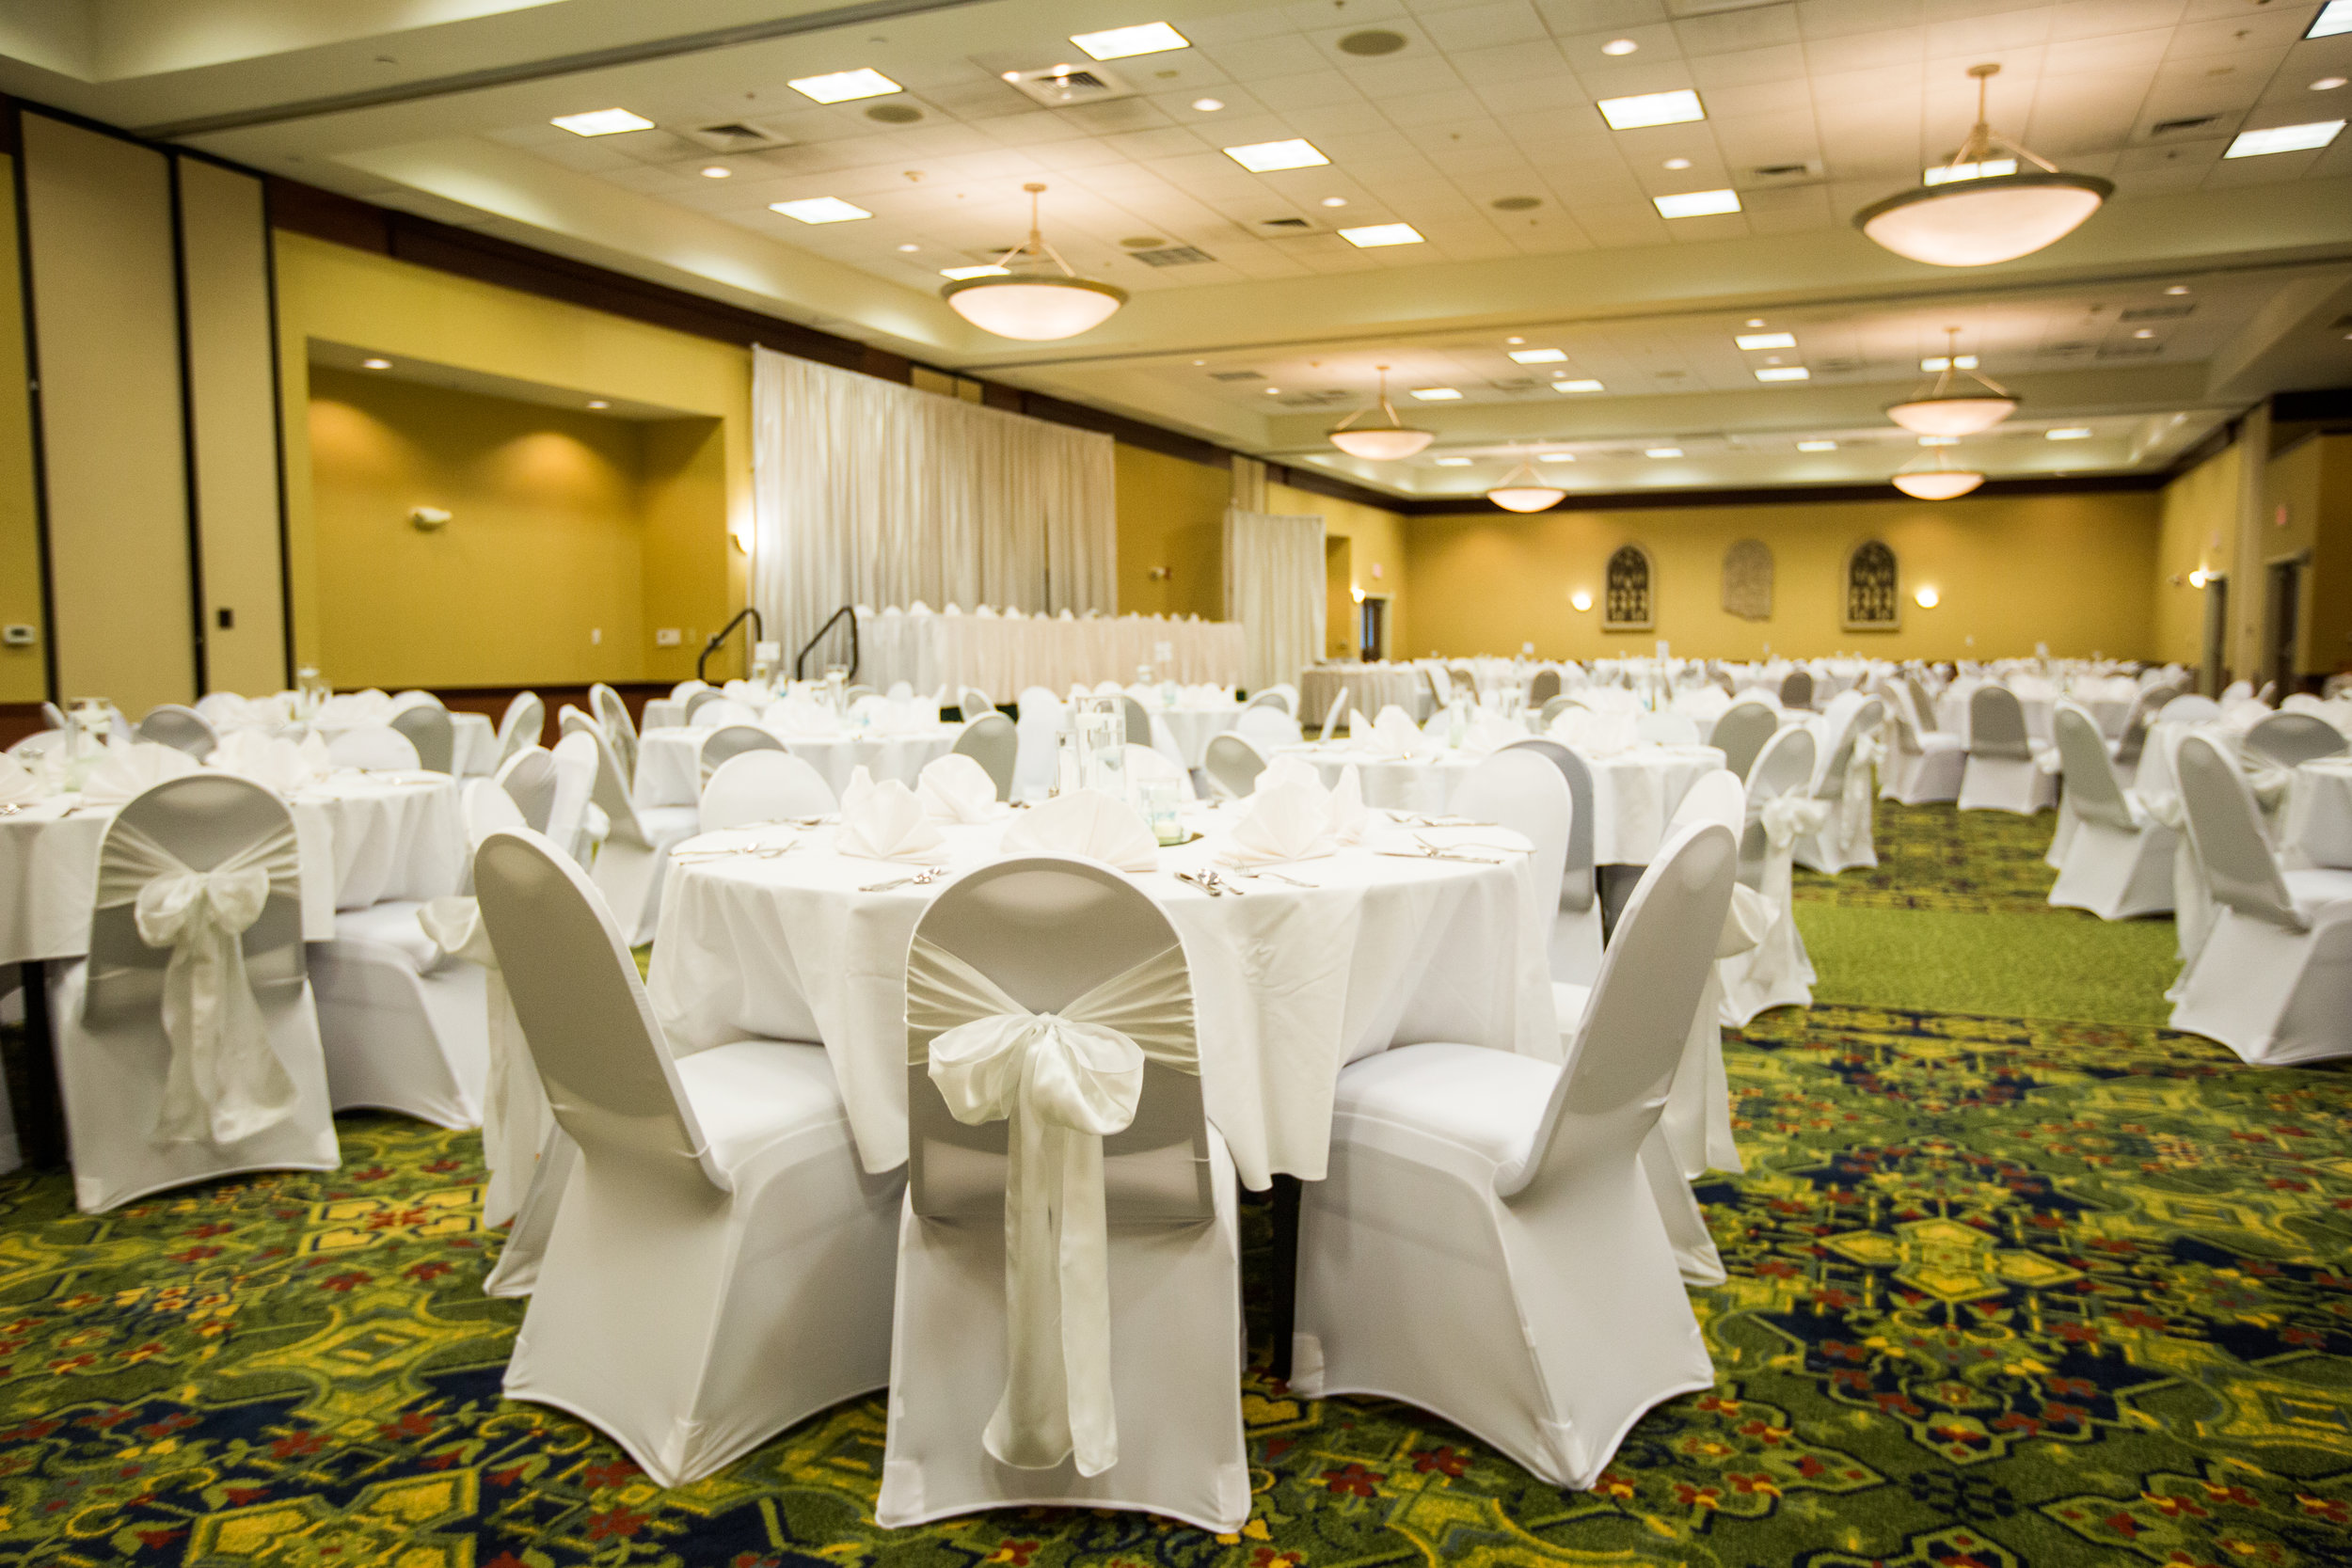 White sashes and white chair covers